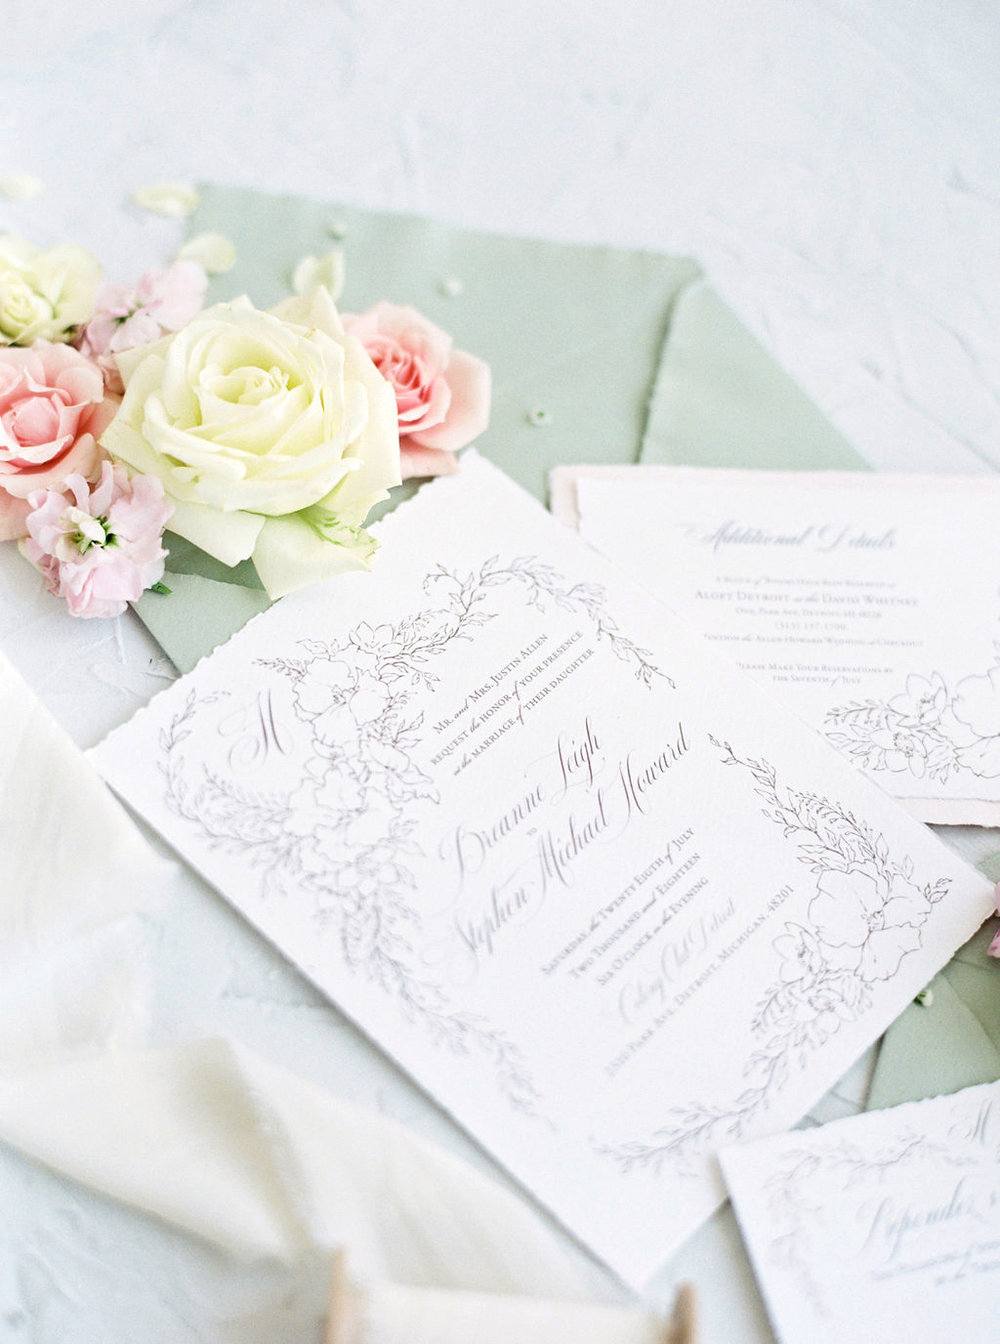 How to start a wedding stationery business - 5 tips for getting started on your new stationery business from professional stationery designer, Katrina of Blushed Design. #weddingpro #weddingvendor #fineartwedding